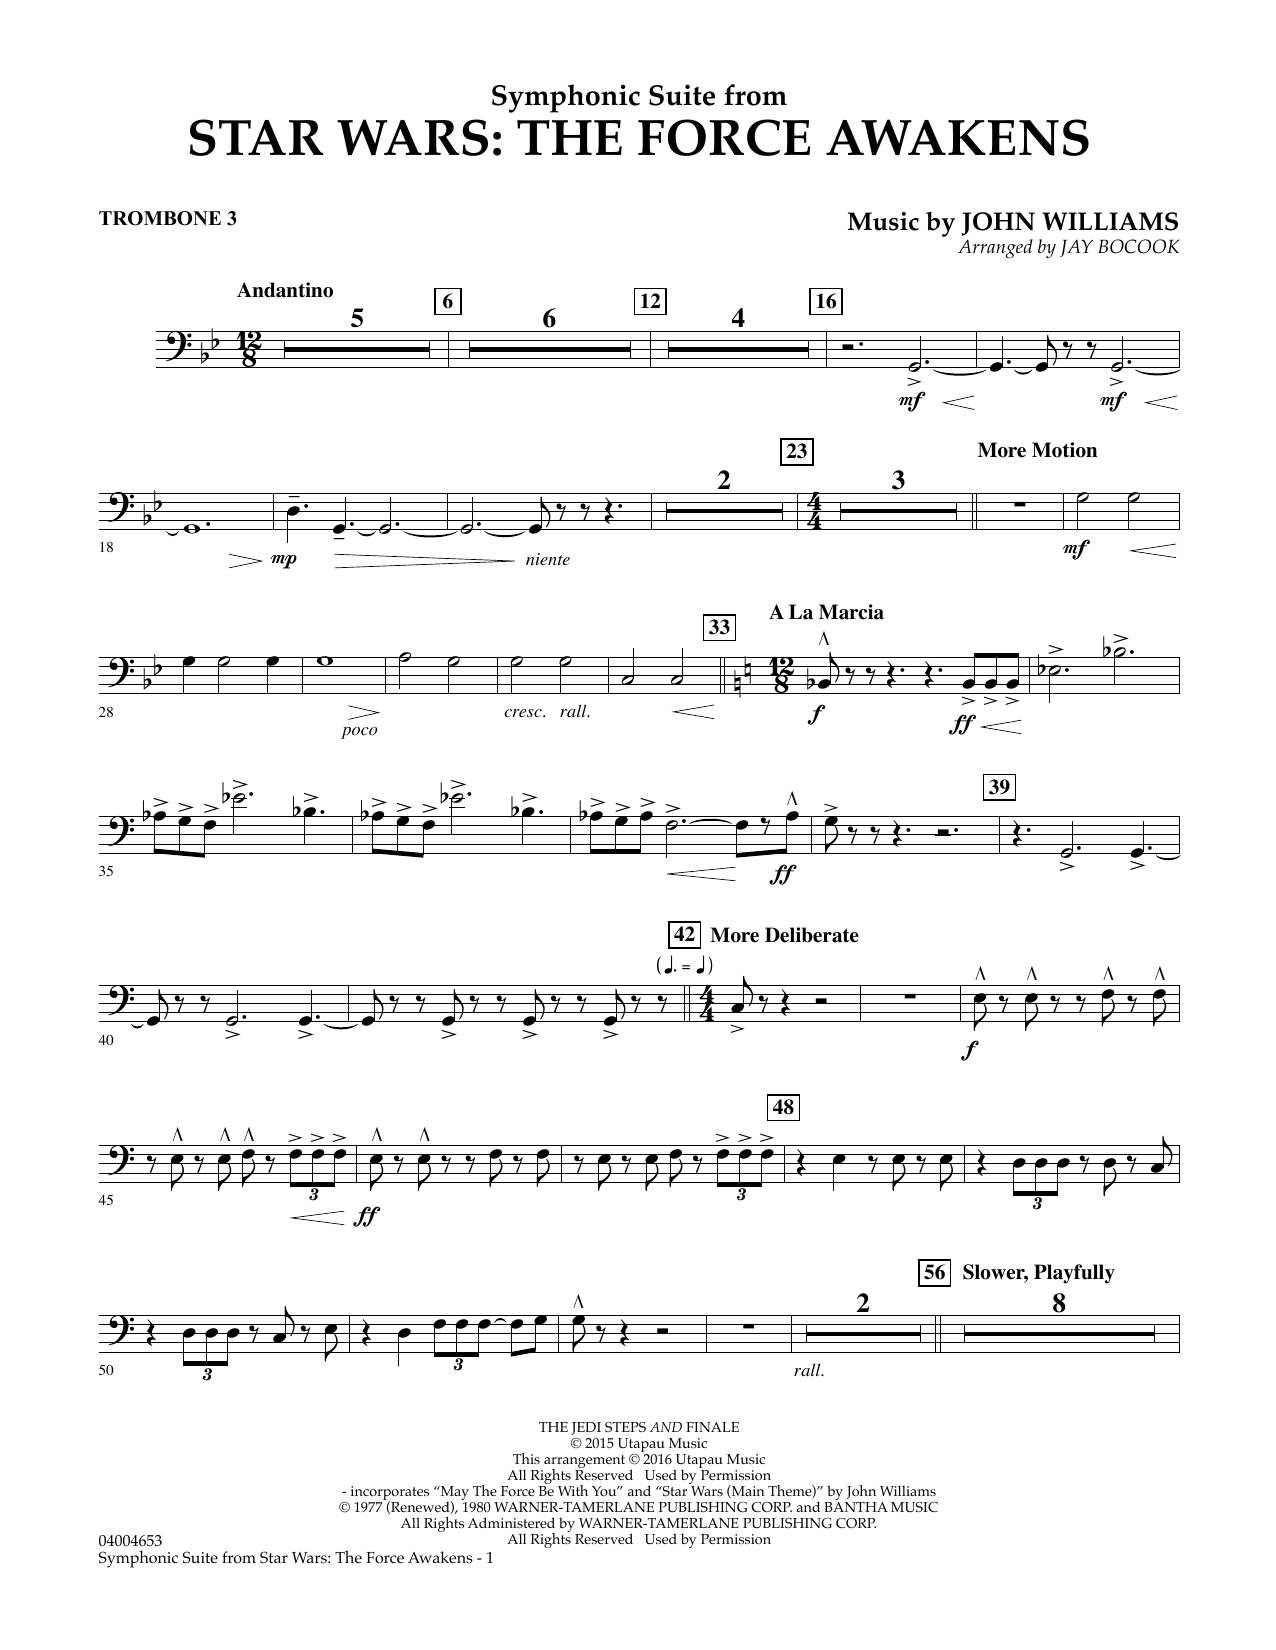 John Williams - Symphonic Suite from Star Wars: The Force Awakens - Trombone 3